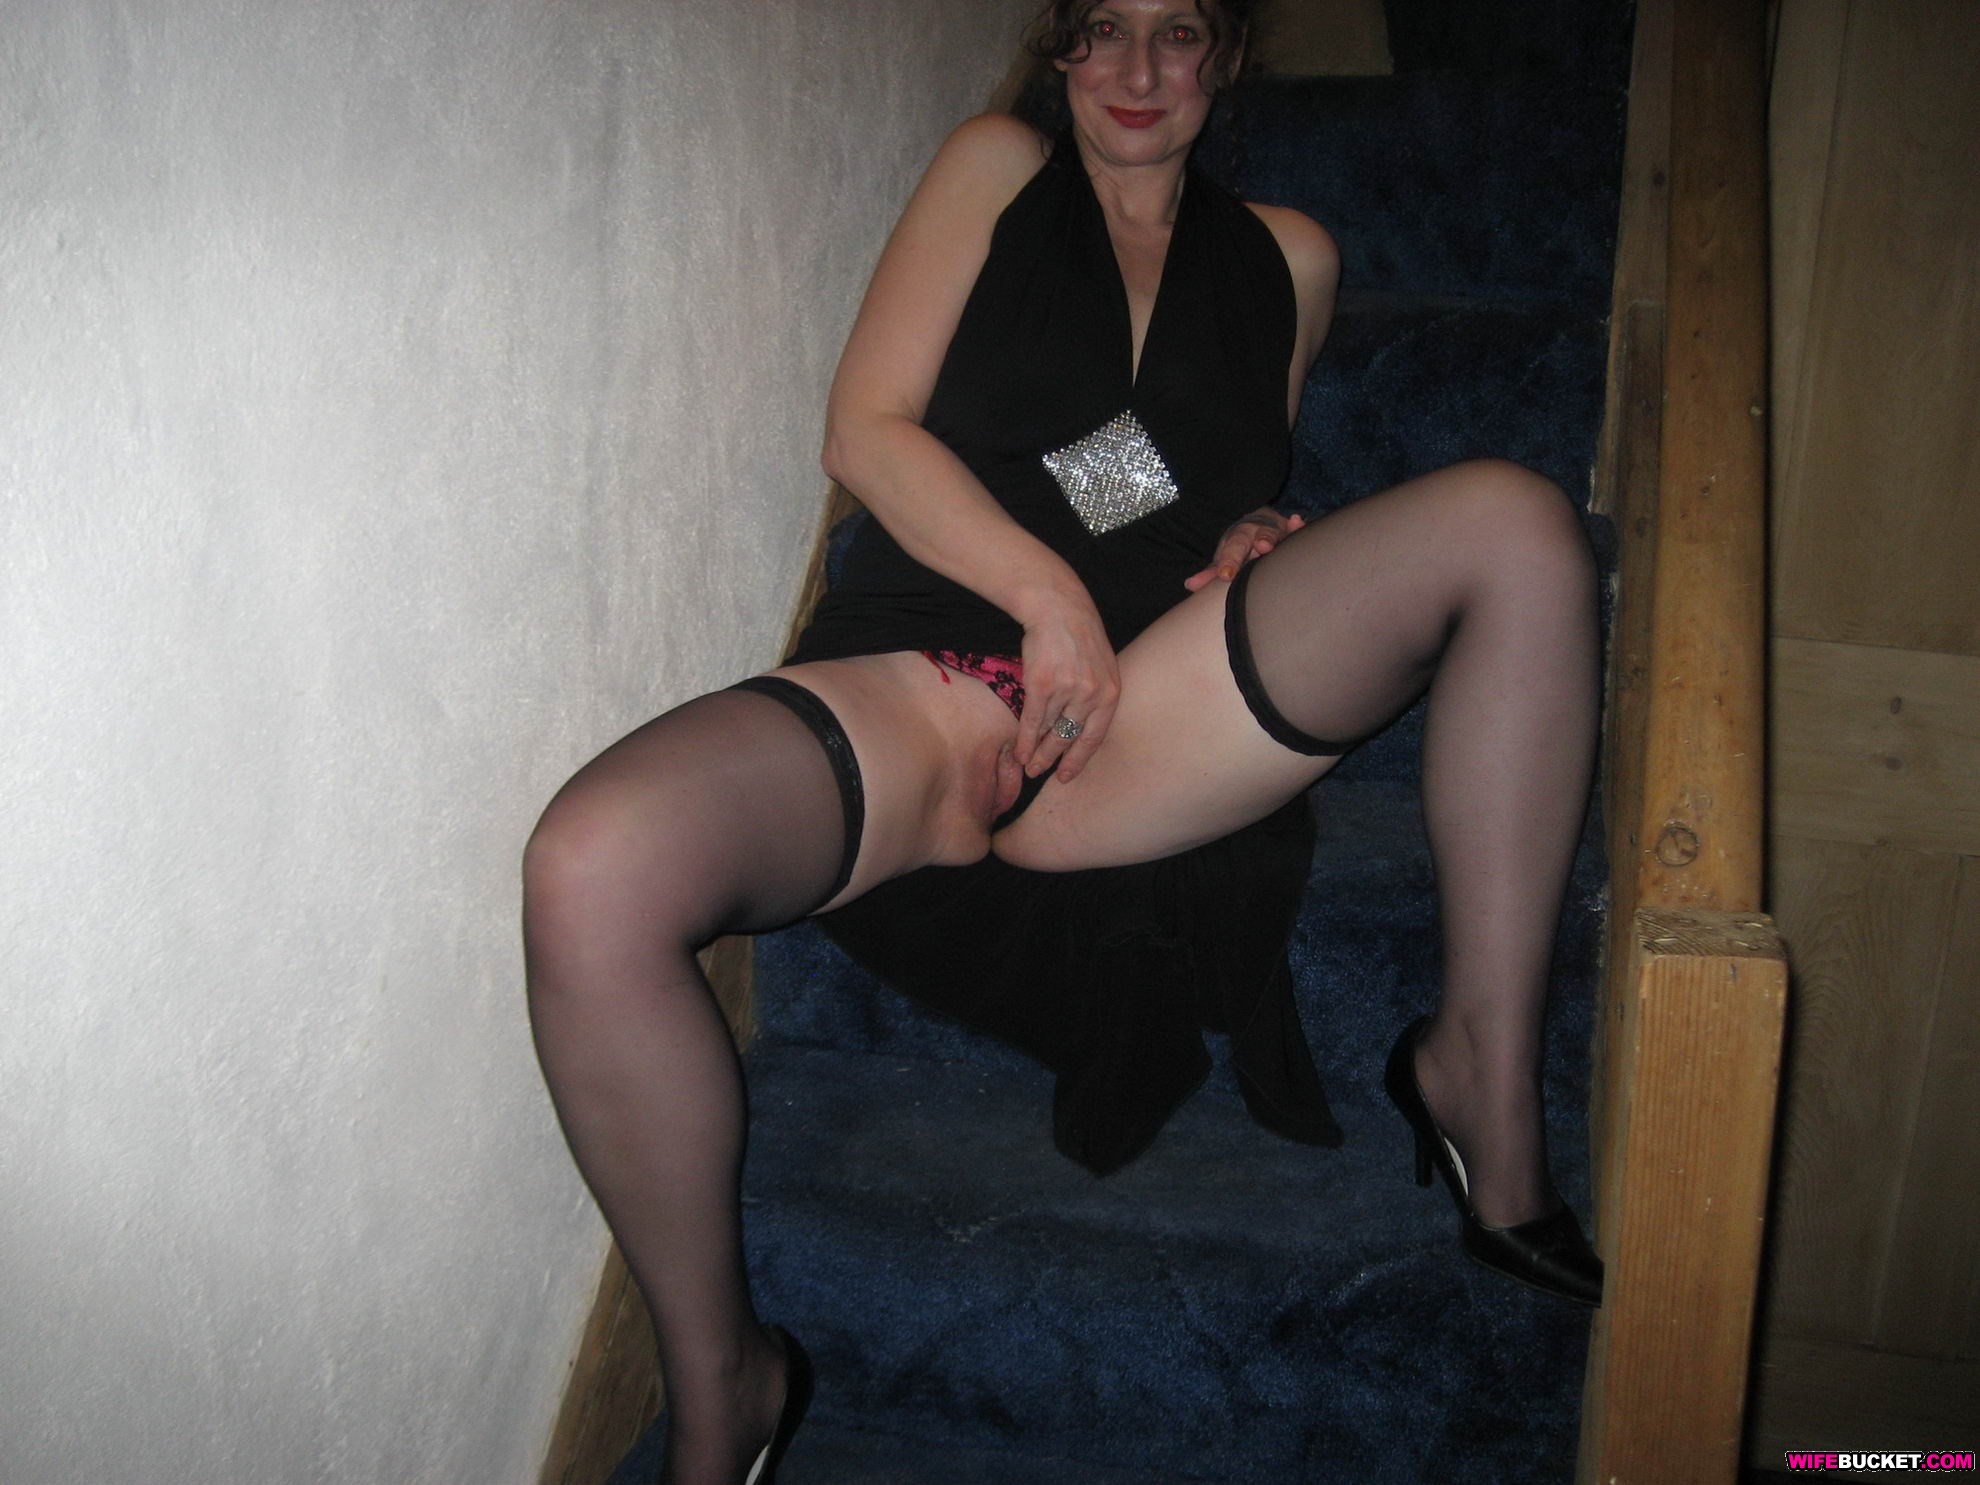 sample online dating site profile